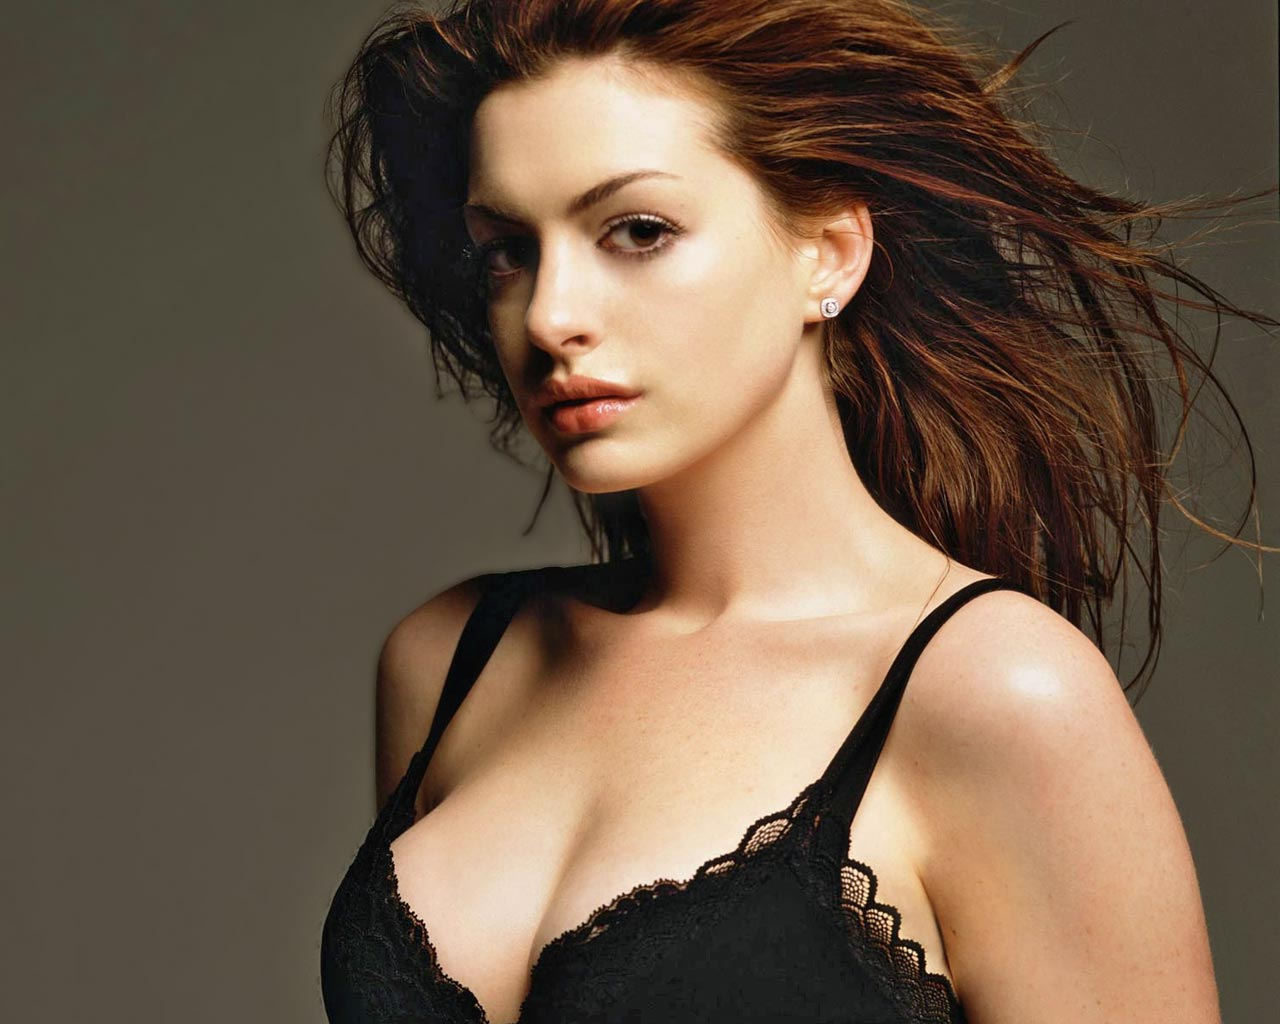 Anne Hathaway hot picture